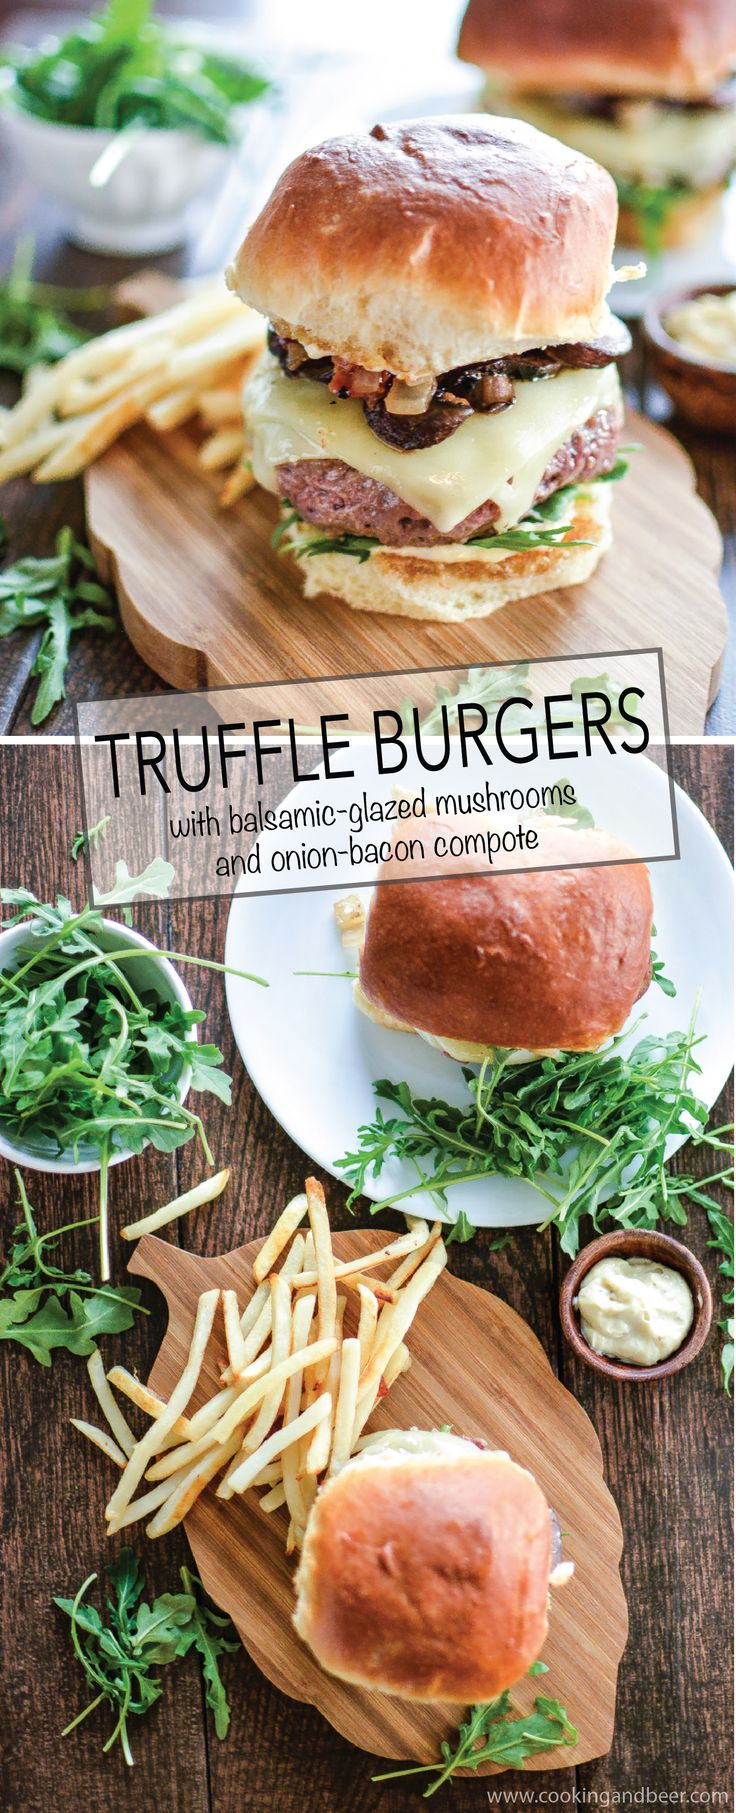 Truffle Burgers with Balsamic-Glazed Mushrooms and Onion-Bacon Compote: a gourmet twist on a classic that is perfect to grill up this summer! | www.cookingandbeer.com